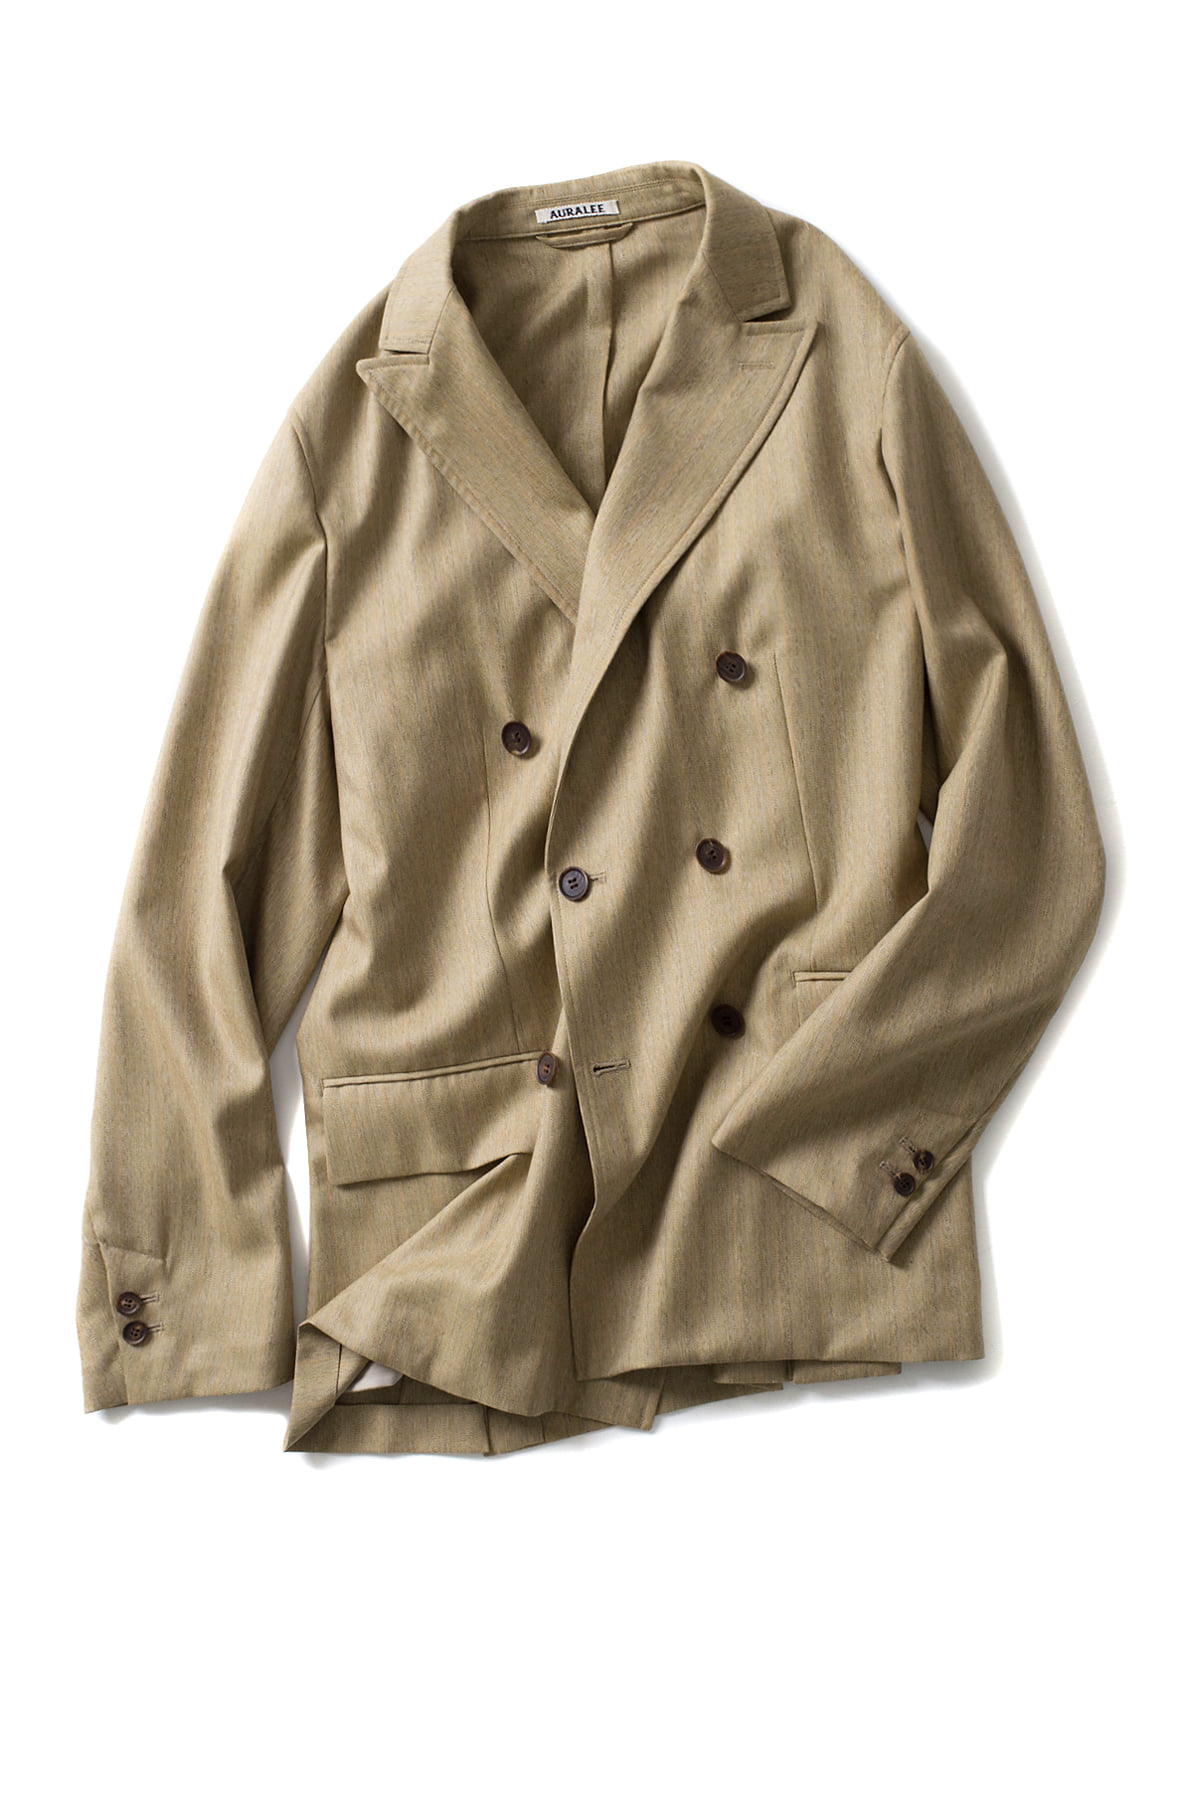 Auralee : Wool Silk Herringbone Double Breasted Jacket (Beige)